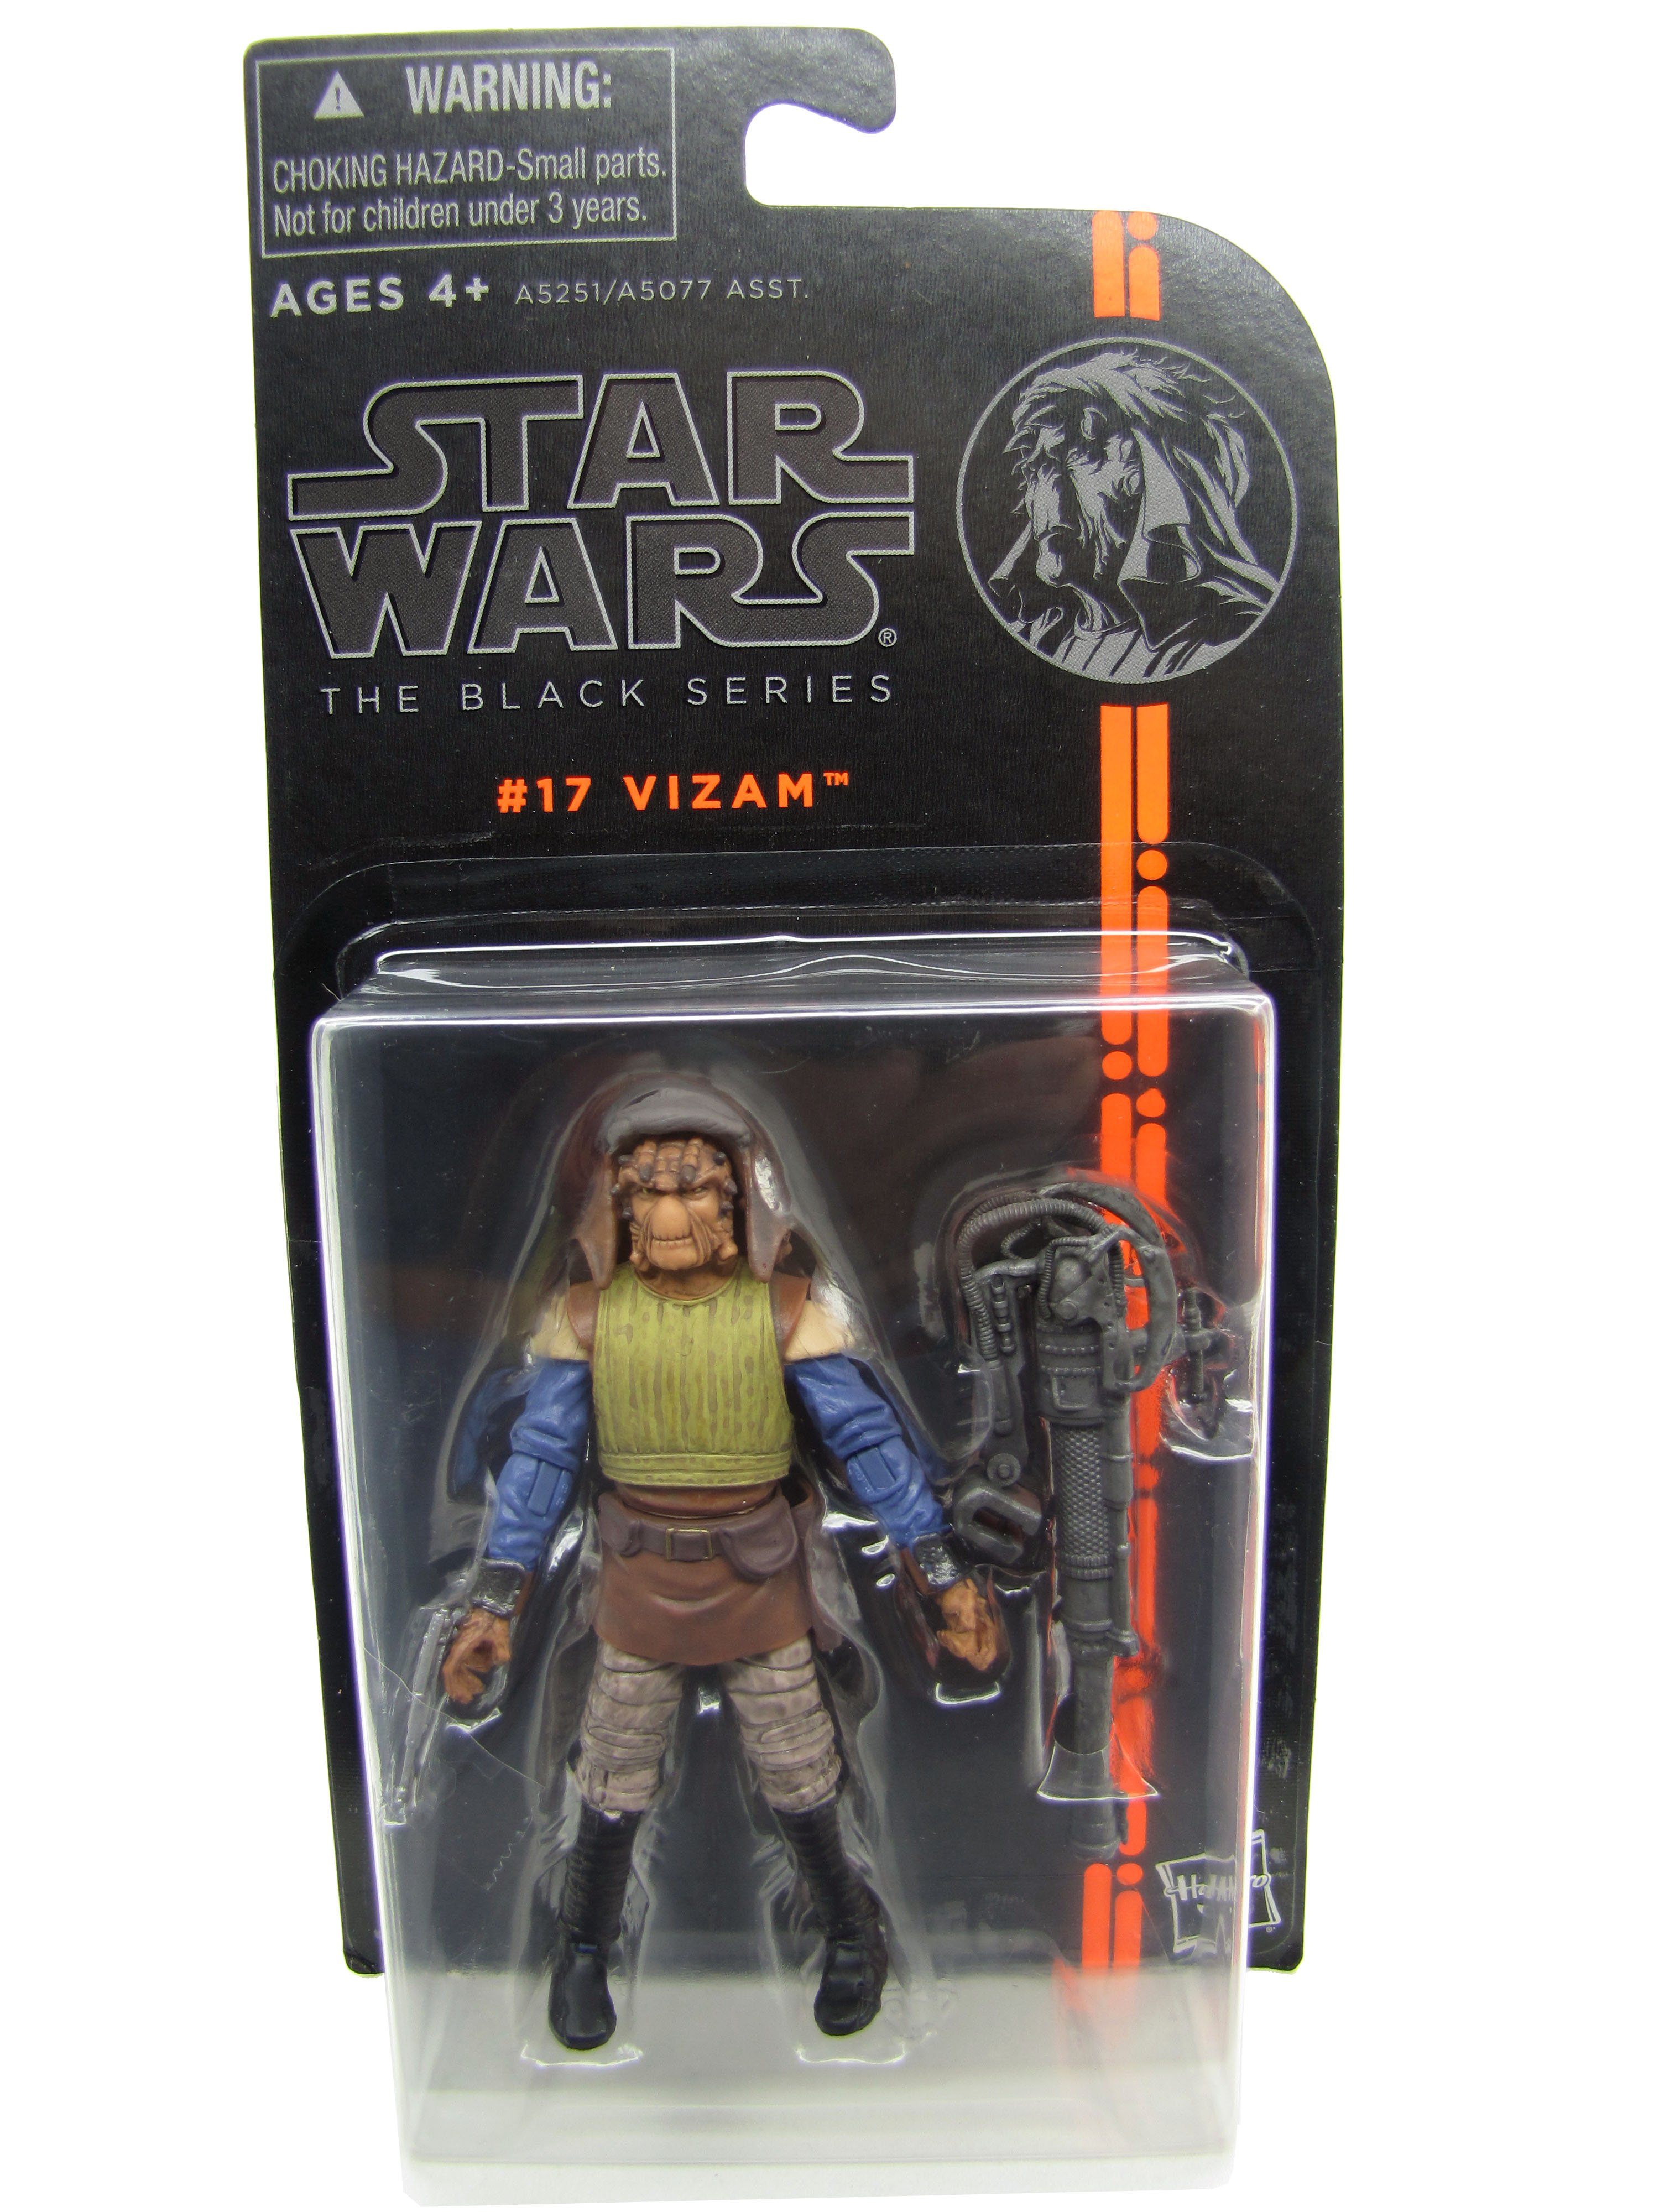 2013 Star Wars The Black Series #17: VIZAM Sealed Mint on Card